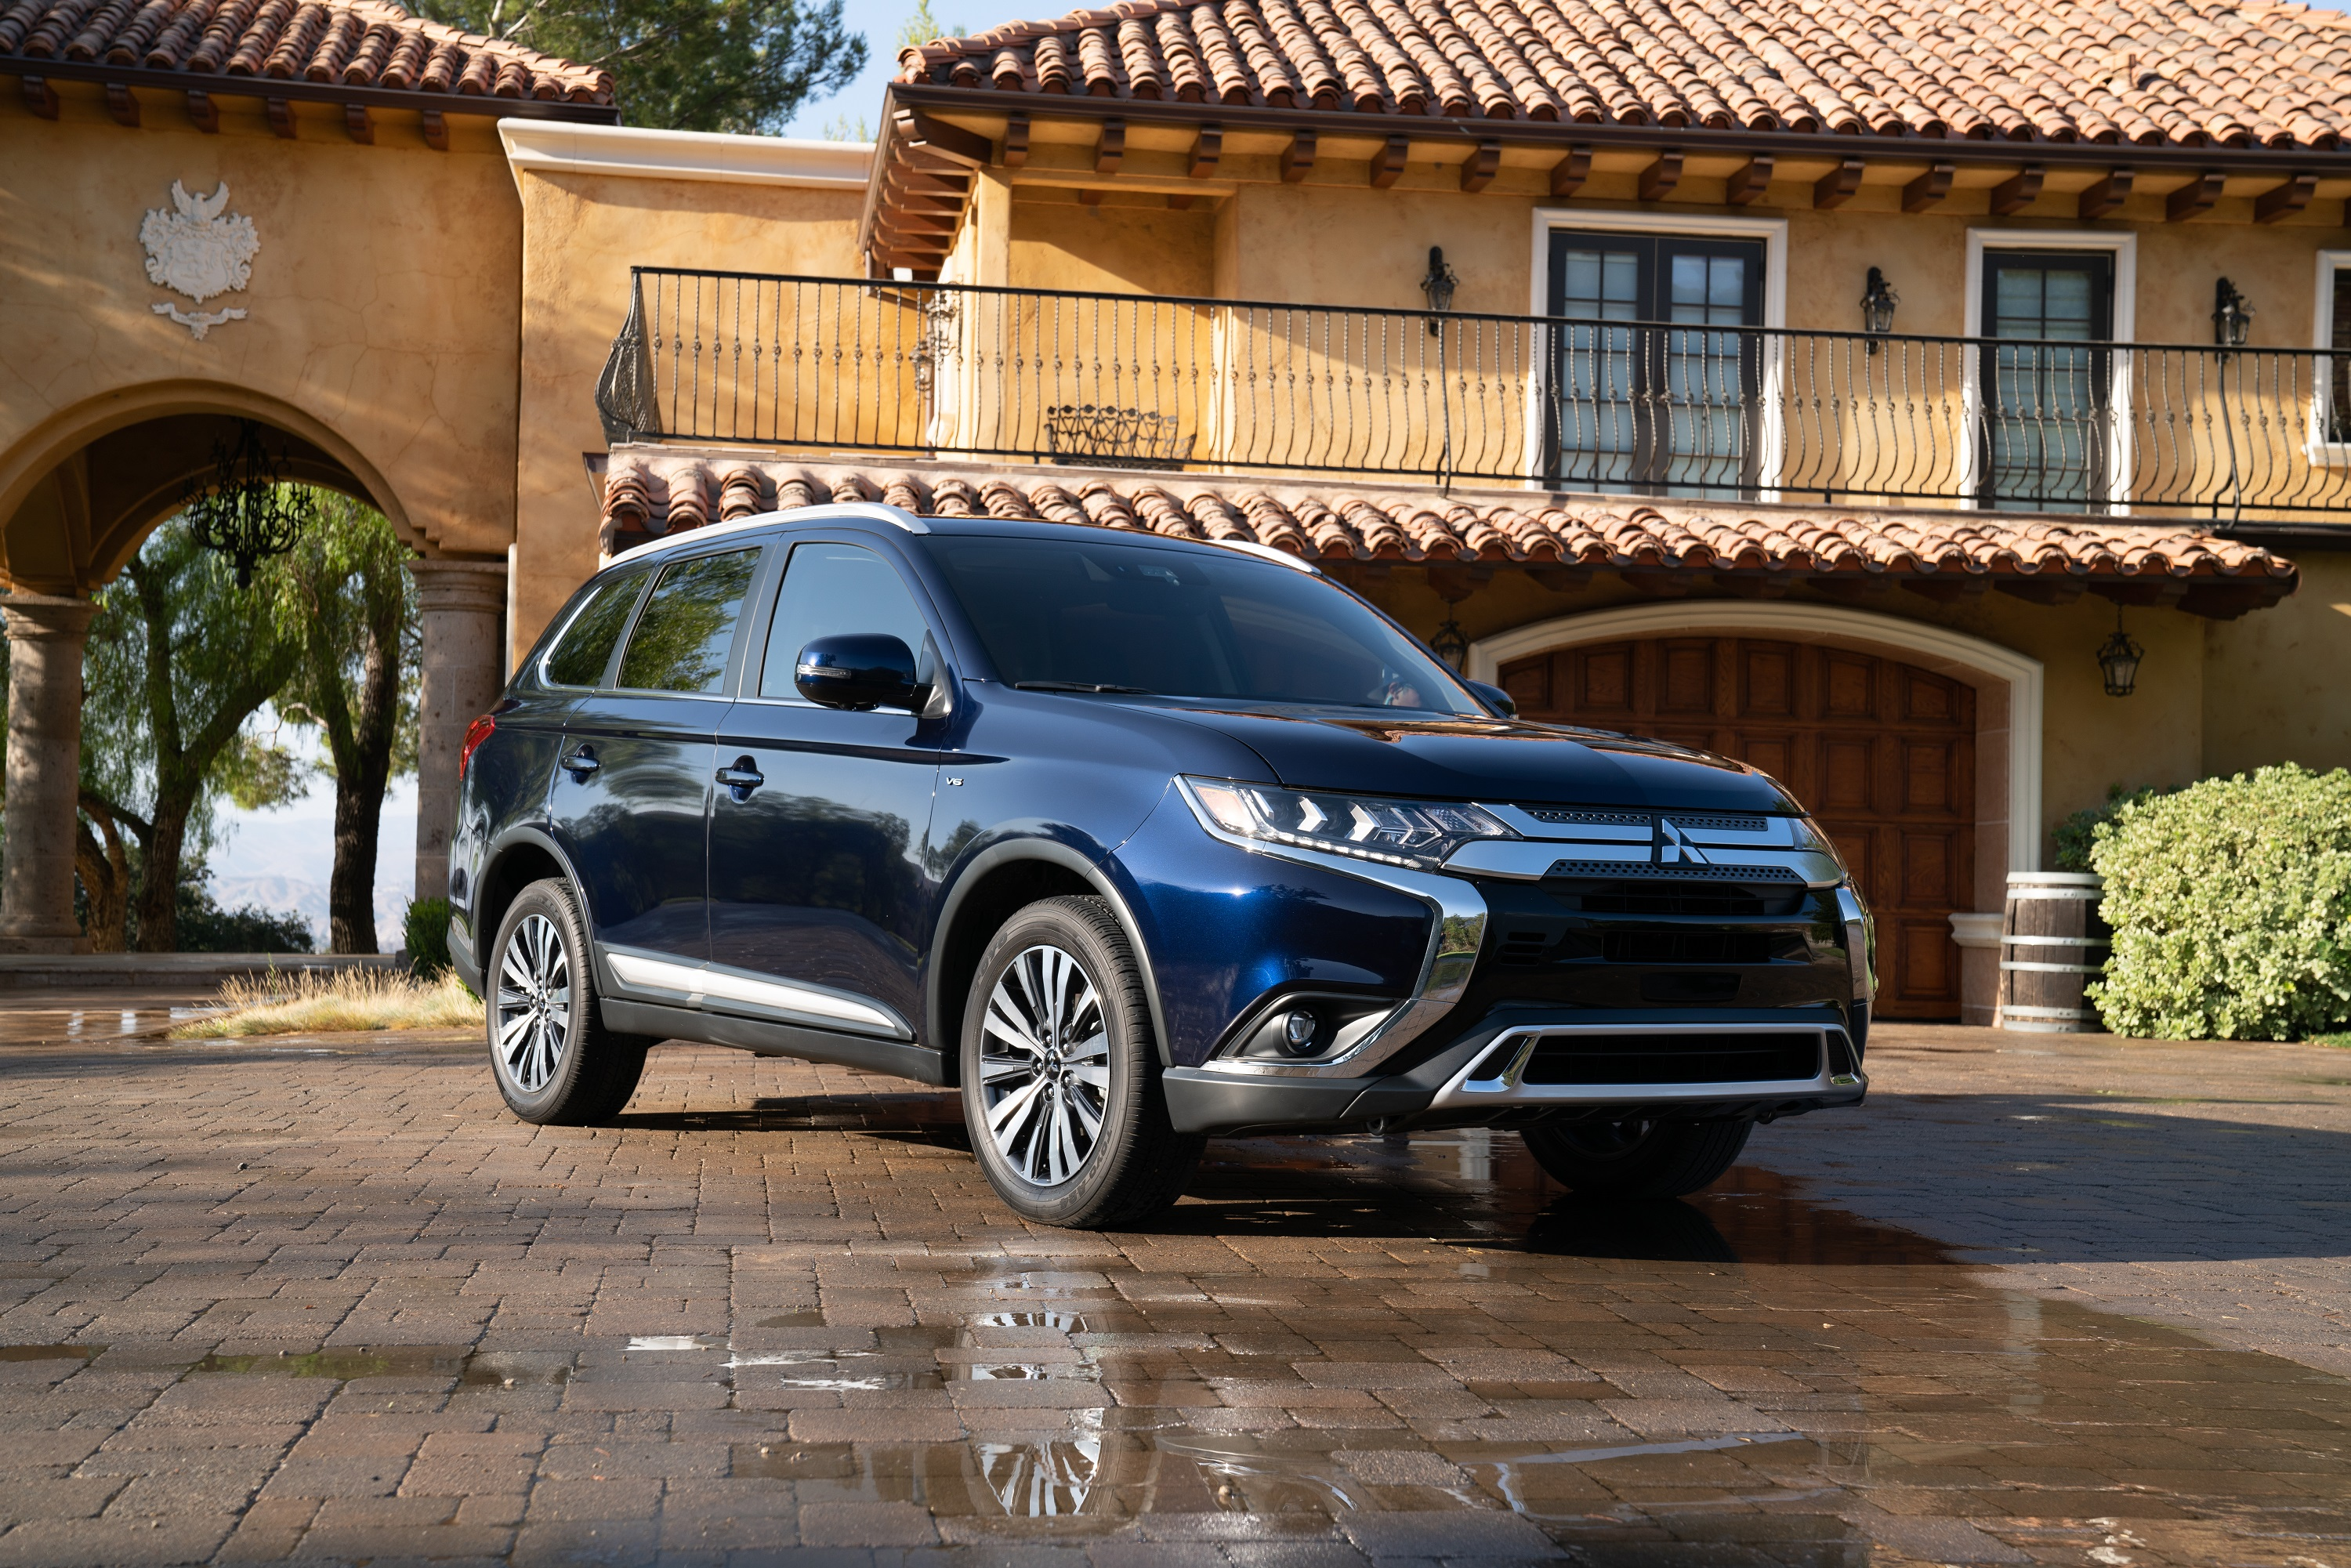 Manufacturer photo: The 2019 Outlander includes new exterior enhancements to the headlamps and grille, and adds 18-inch alloy wheels